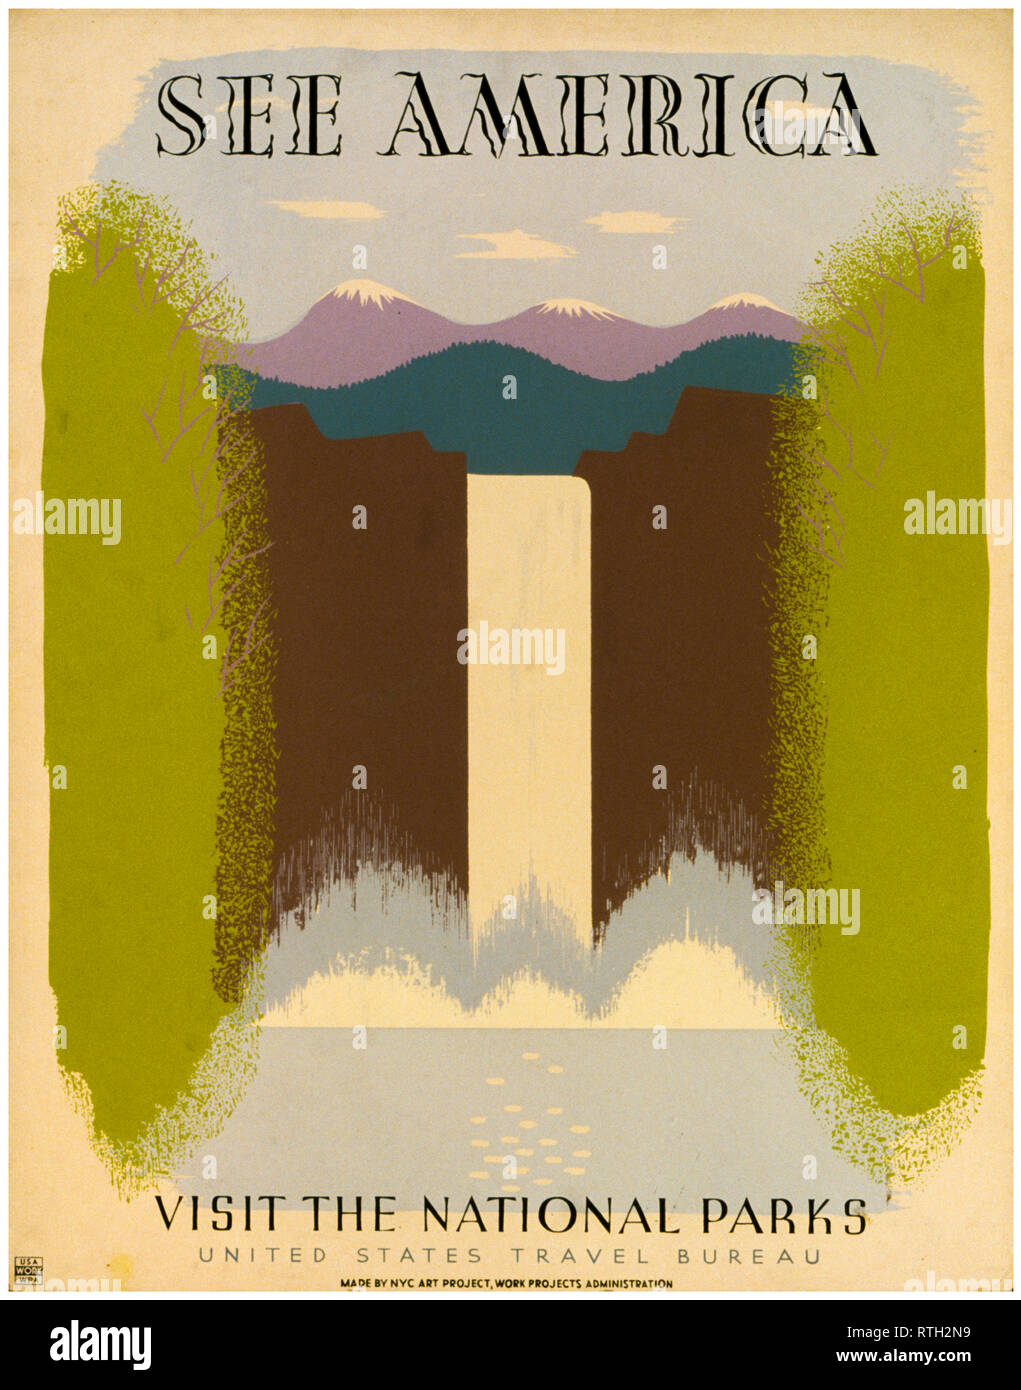 See America, Visit the National Parks, vintage travel poster, 1936-1940 - Stock Image